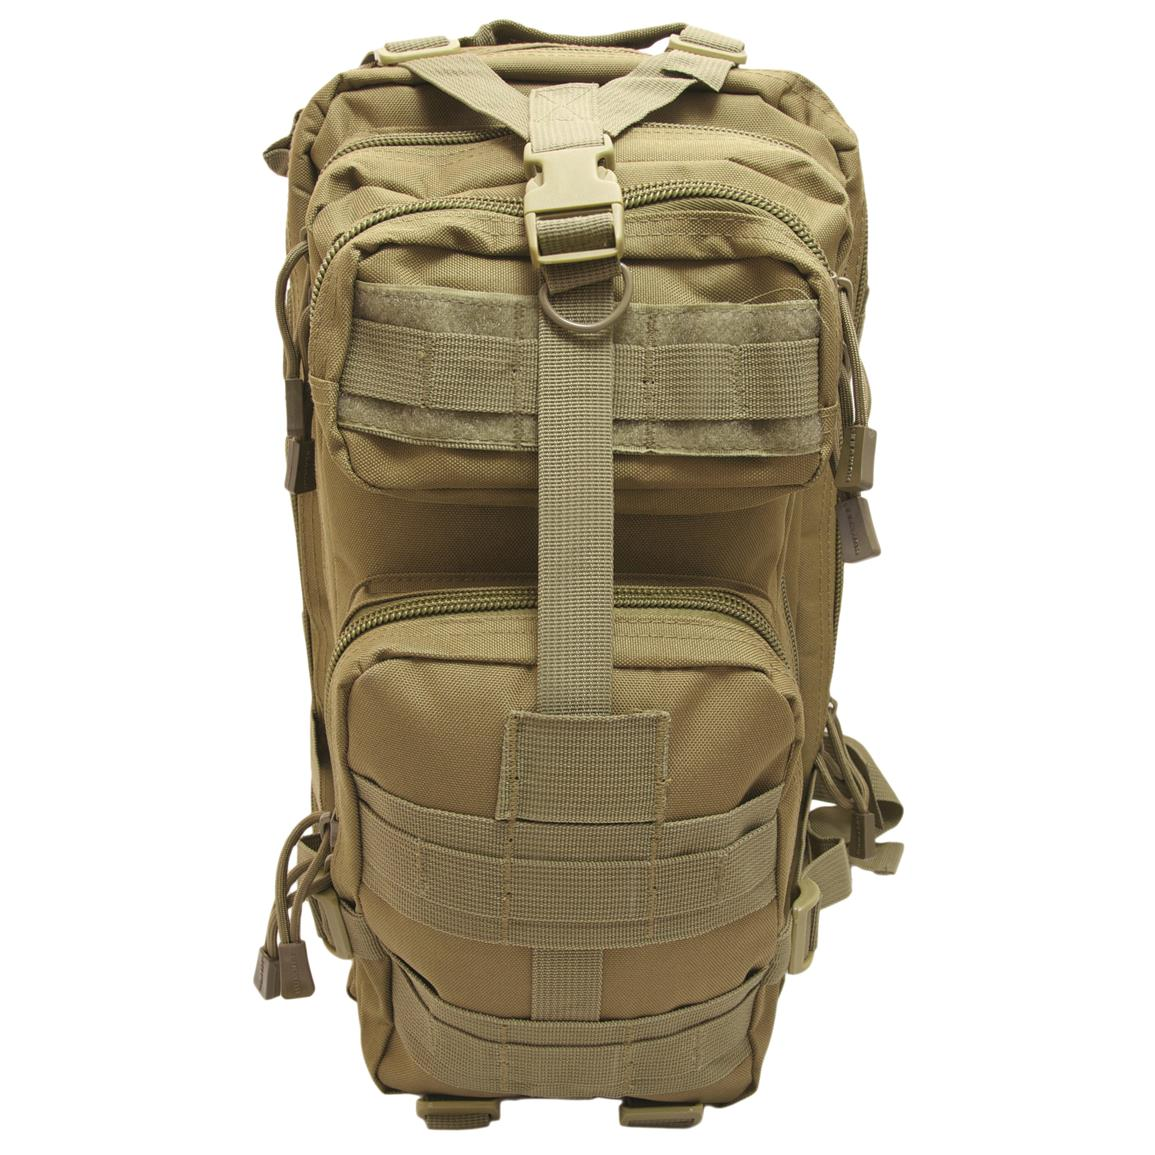 Humvee Transport Gear Bag, Tan, Front